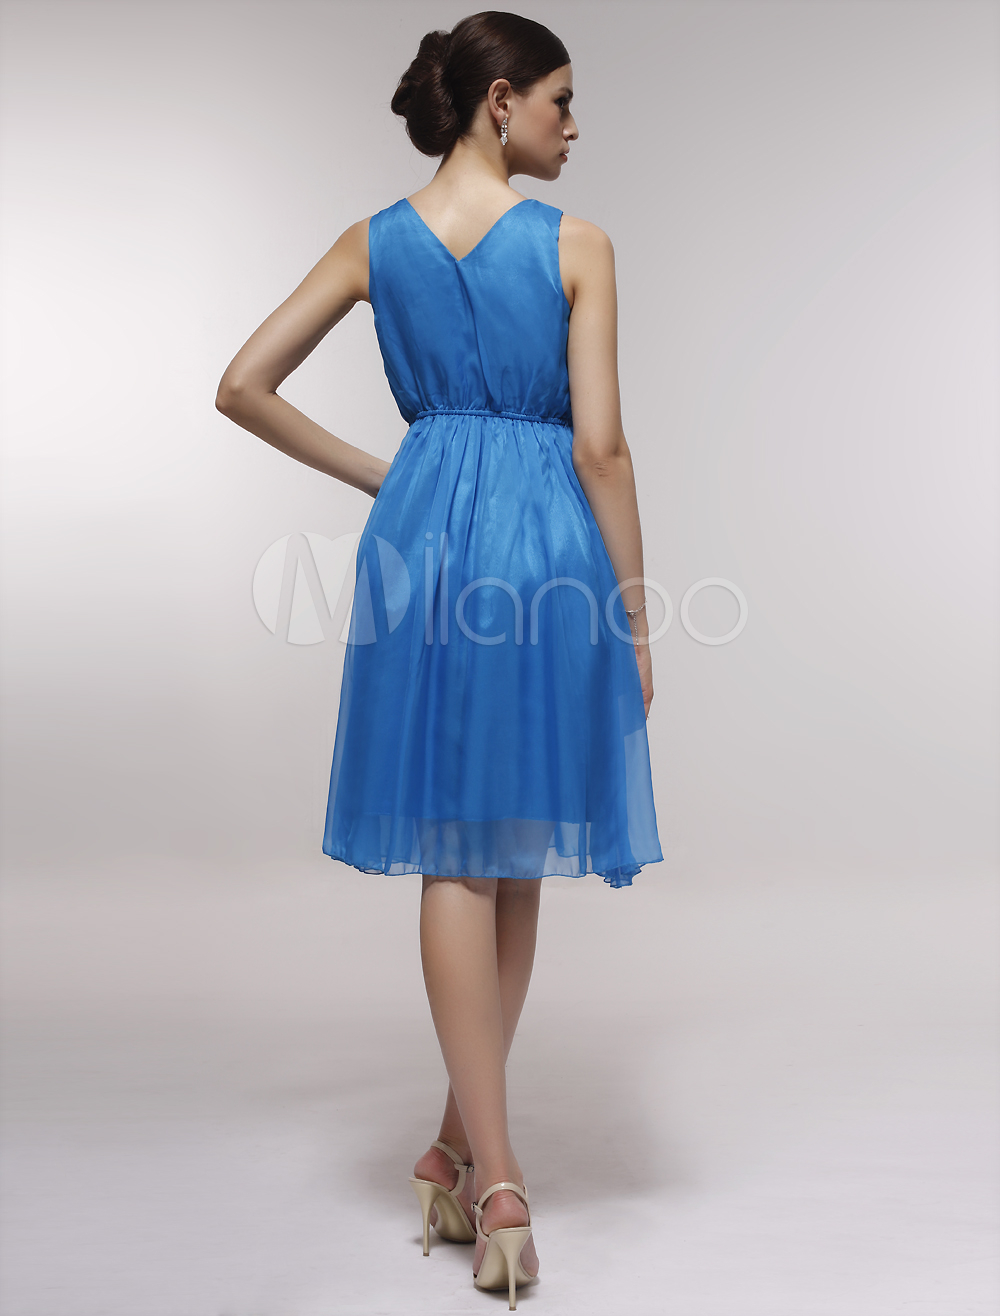 0719a75ac3d ... Pretty White Satin Gauze V-neck Knee-length Graduation Dress-No.9 ...